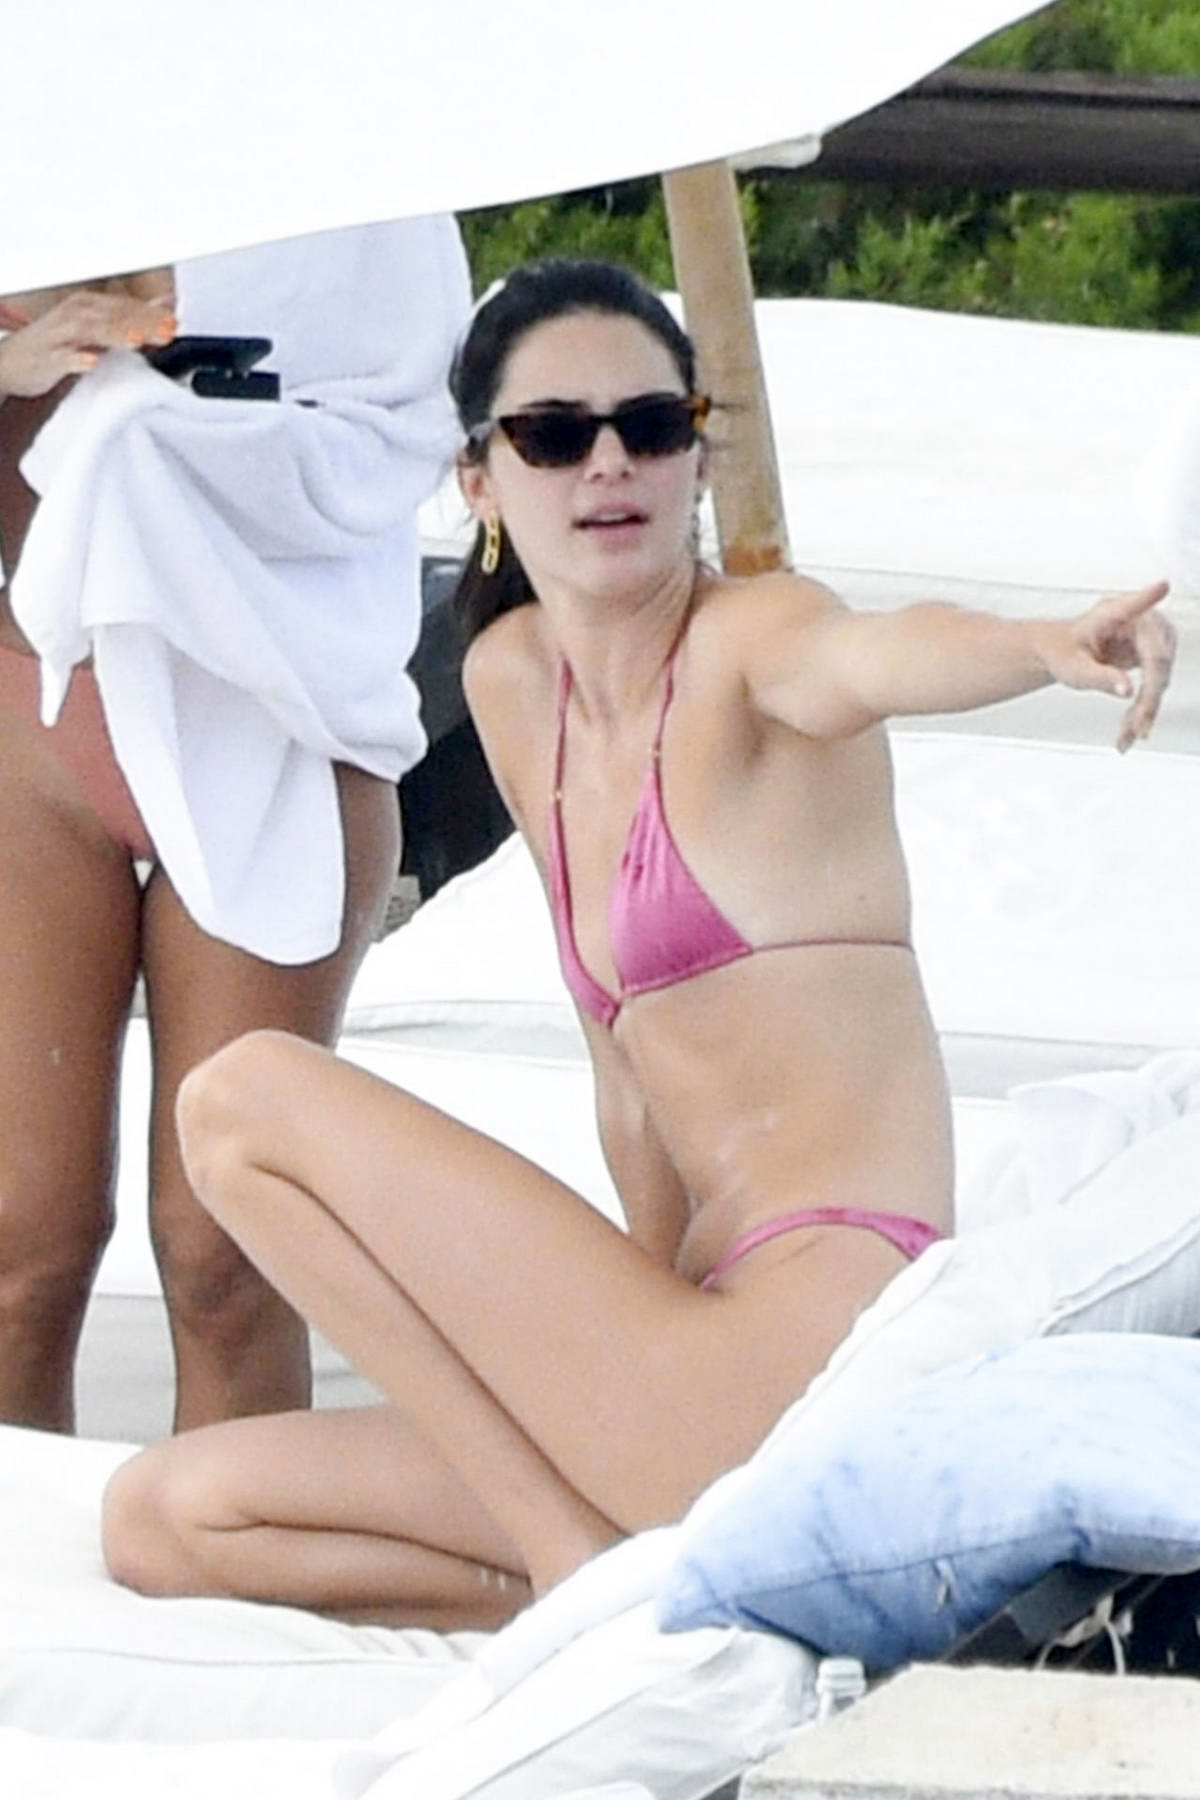 Kendall Jenner slips into a pink bikini while relaxing by the pool in Costa Smeralda, Sardinia, Italy